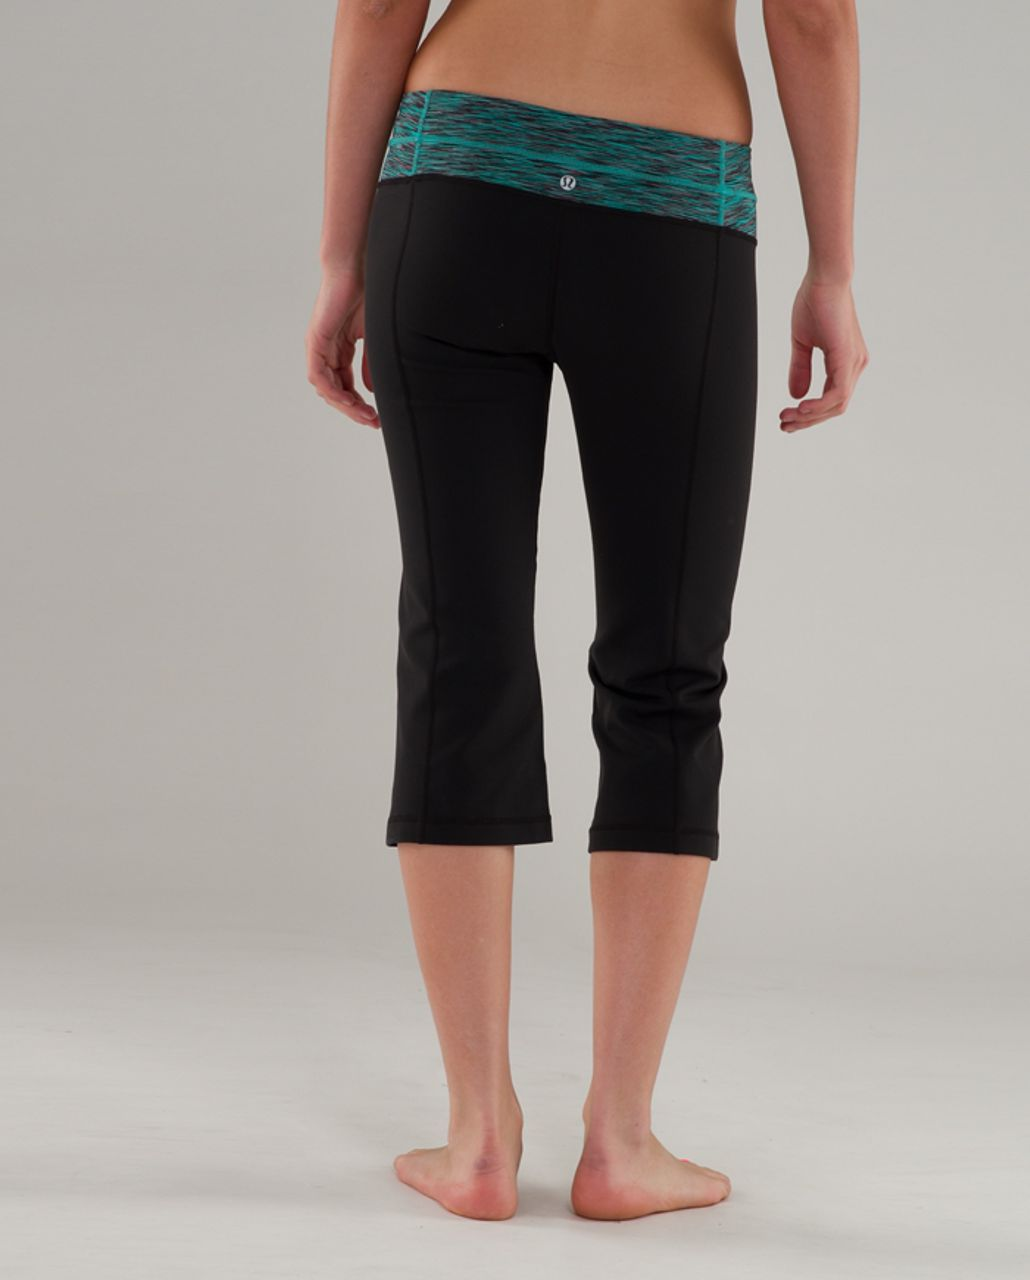 Lululemon Groove Crop - Black /  Teal Ash Space Dye